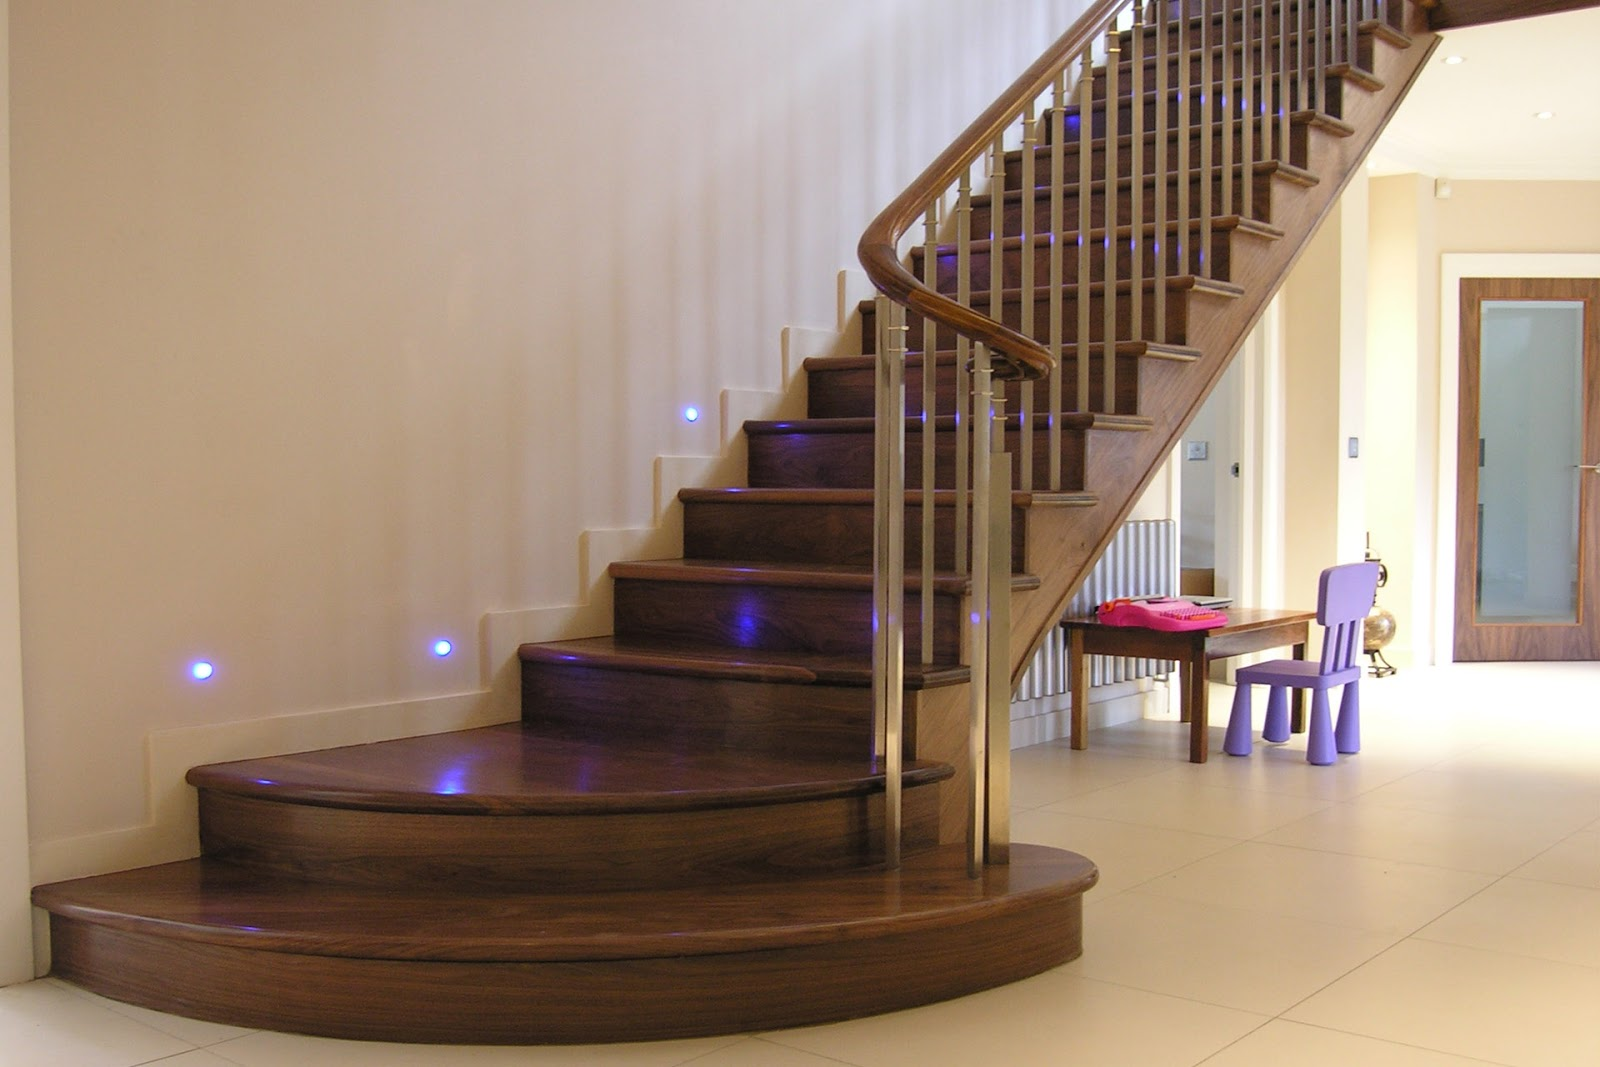 Second Generation Wood Stairs Why Should You Opt For The Wooden   Second Generation Wood Stairs   Railing   Presentation Transcript   Powerpoint Presentation   Interior Stair   Railing Systems